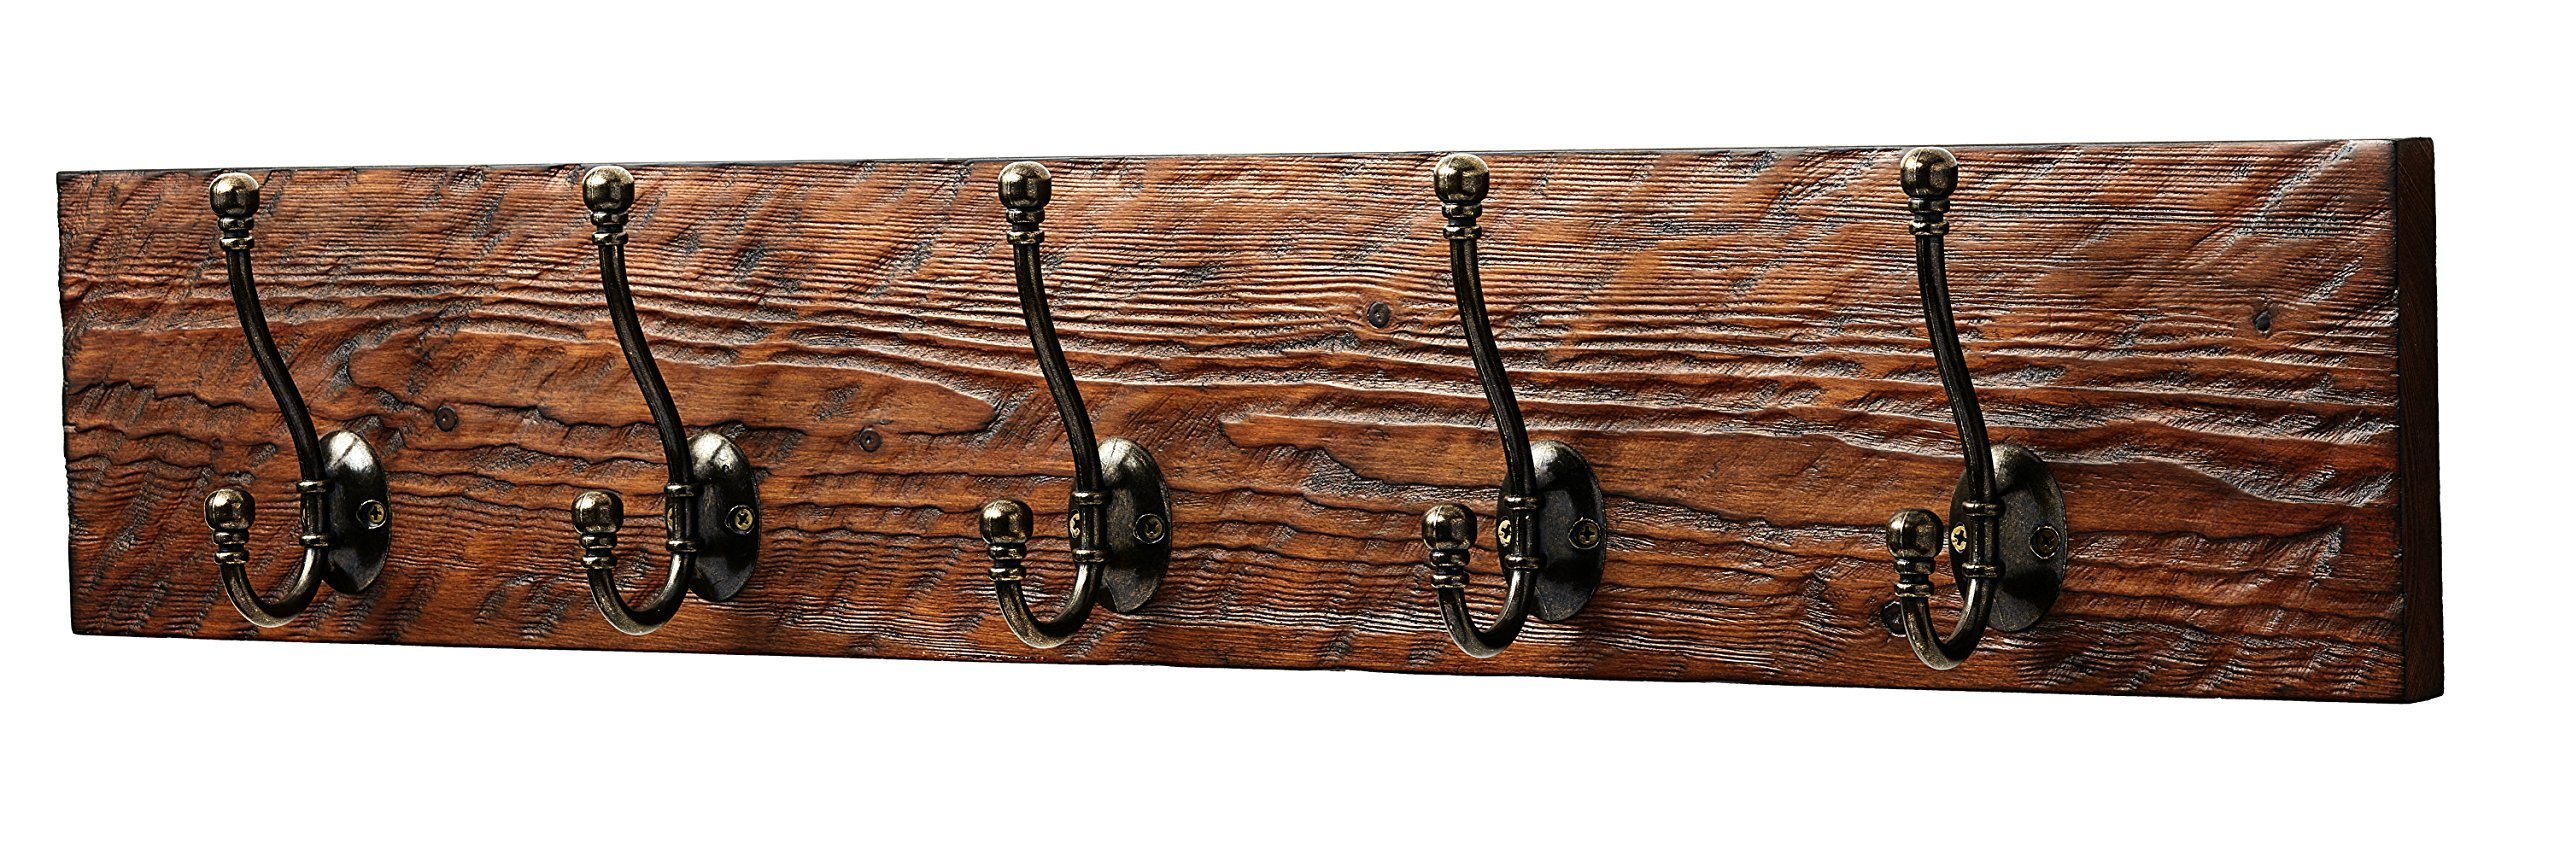 Rustic Style 5-Hook Wooden Coat Rack, Distressed Dark Brown with Aged Brass Hooks, Solid Wood, Wall Mounted, Vintage Entryway Coat Rack, Large, 30'' x 5.5''